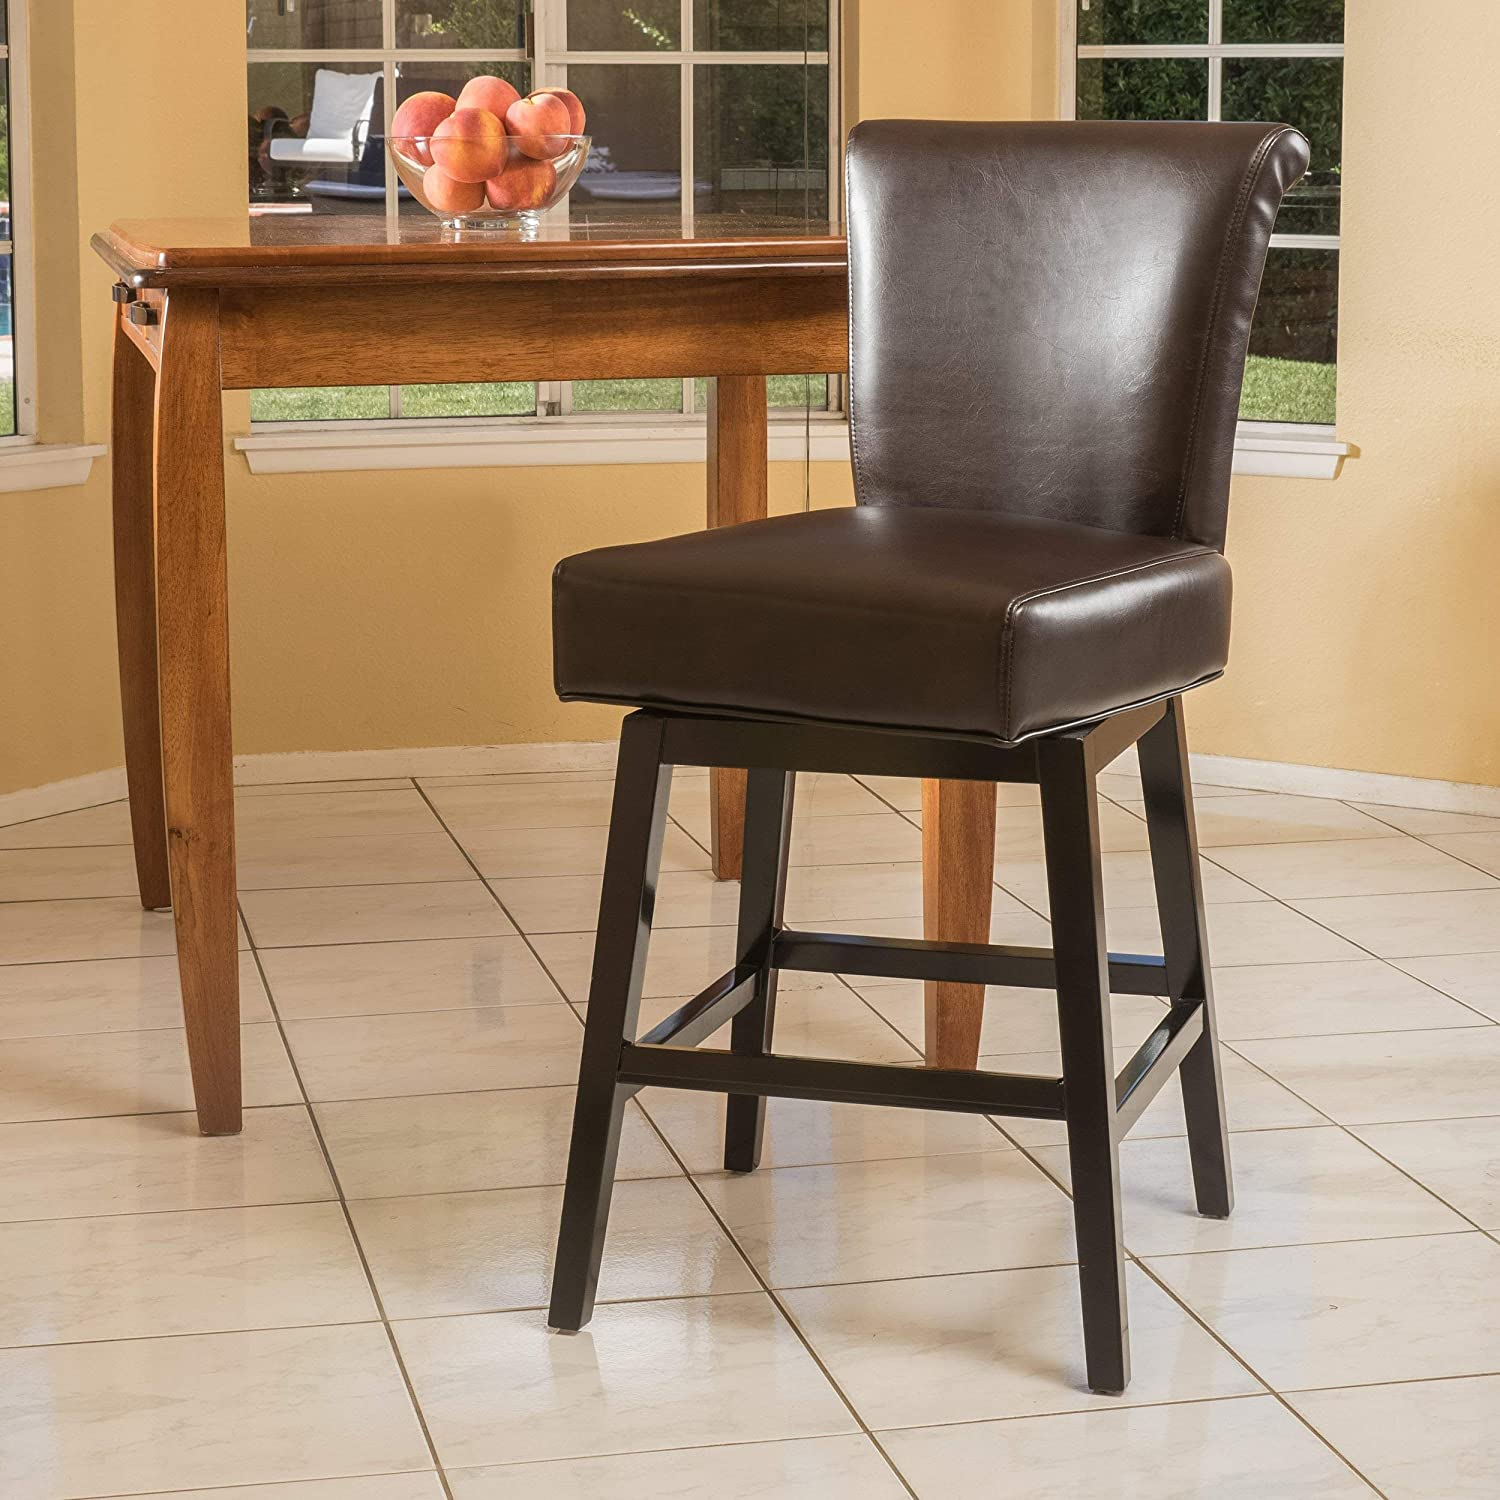 Christopher Knight Home Bergen Dark Brown Leather Swivel Counter Stool, 19.5 W25 D 41 H